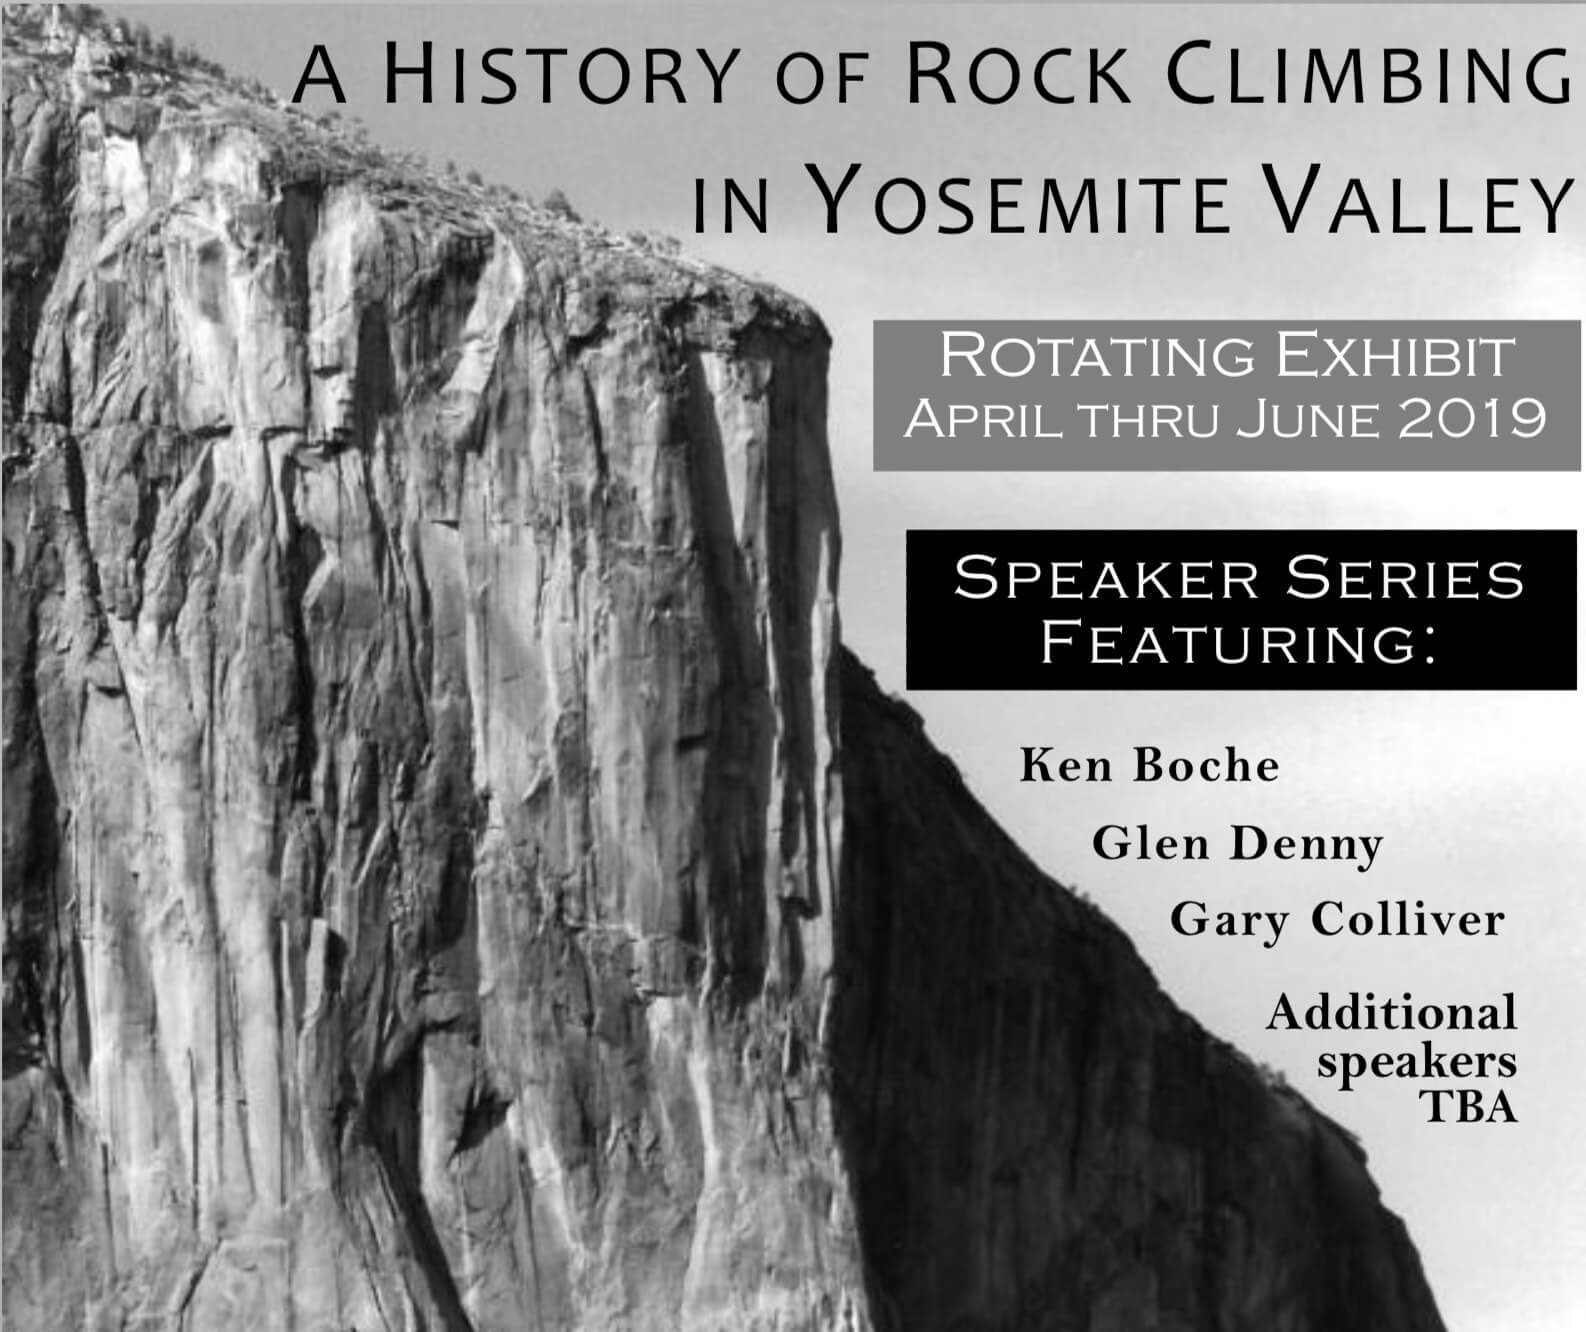 A History of Rock Climbing In Yosemite Valley